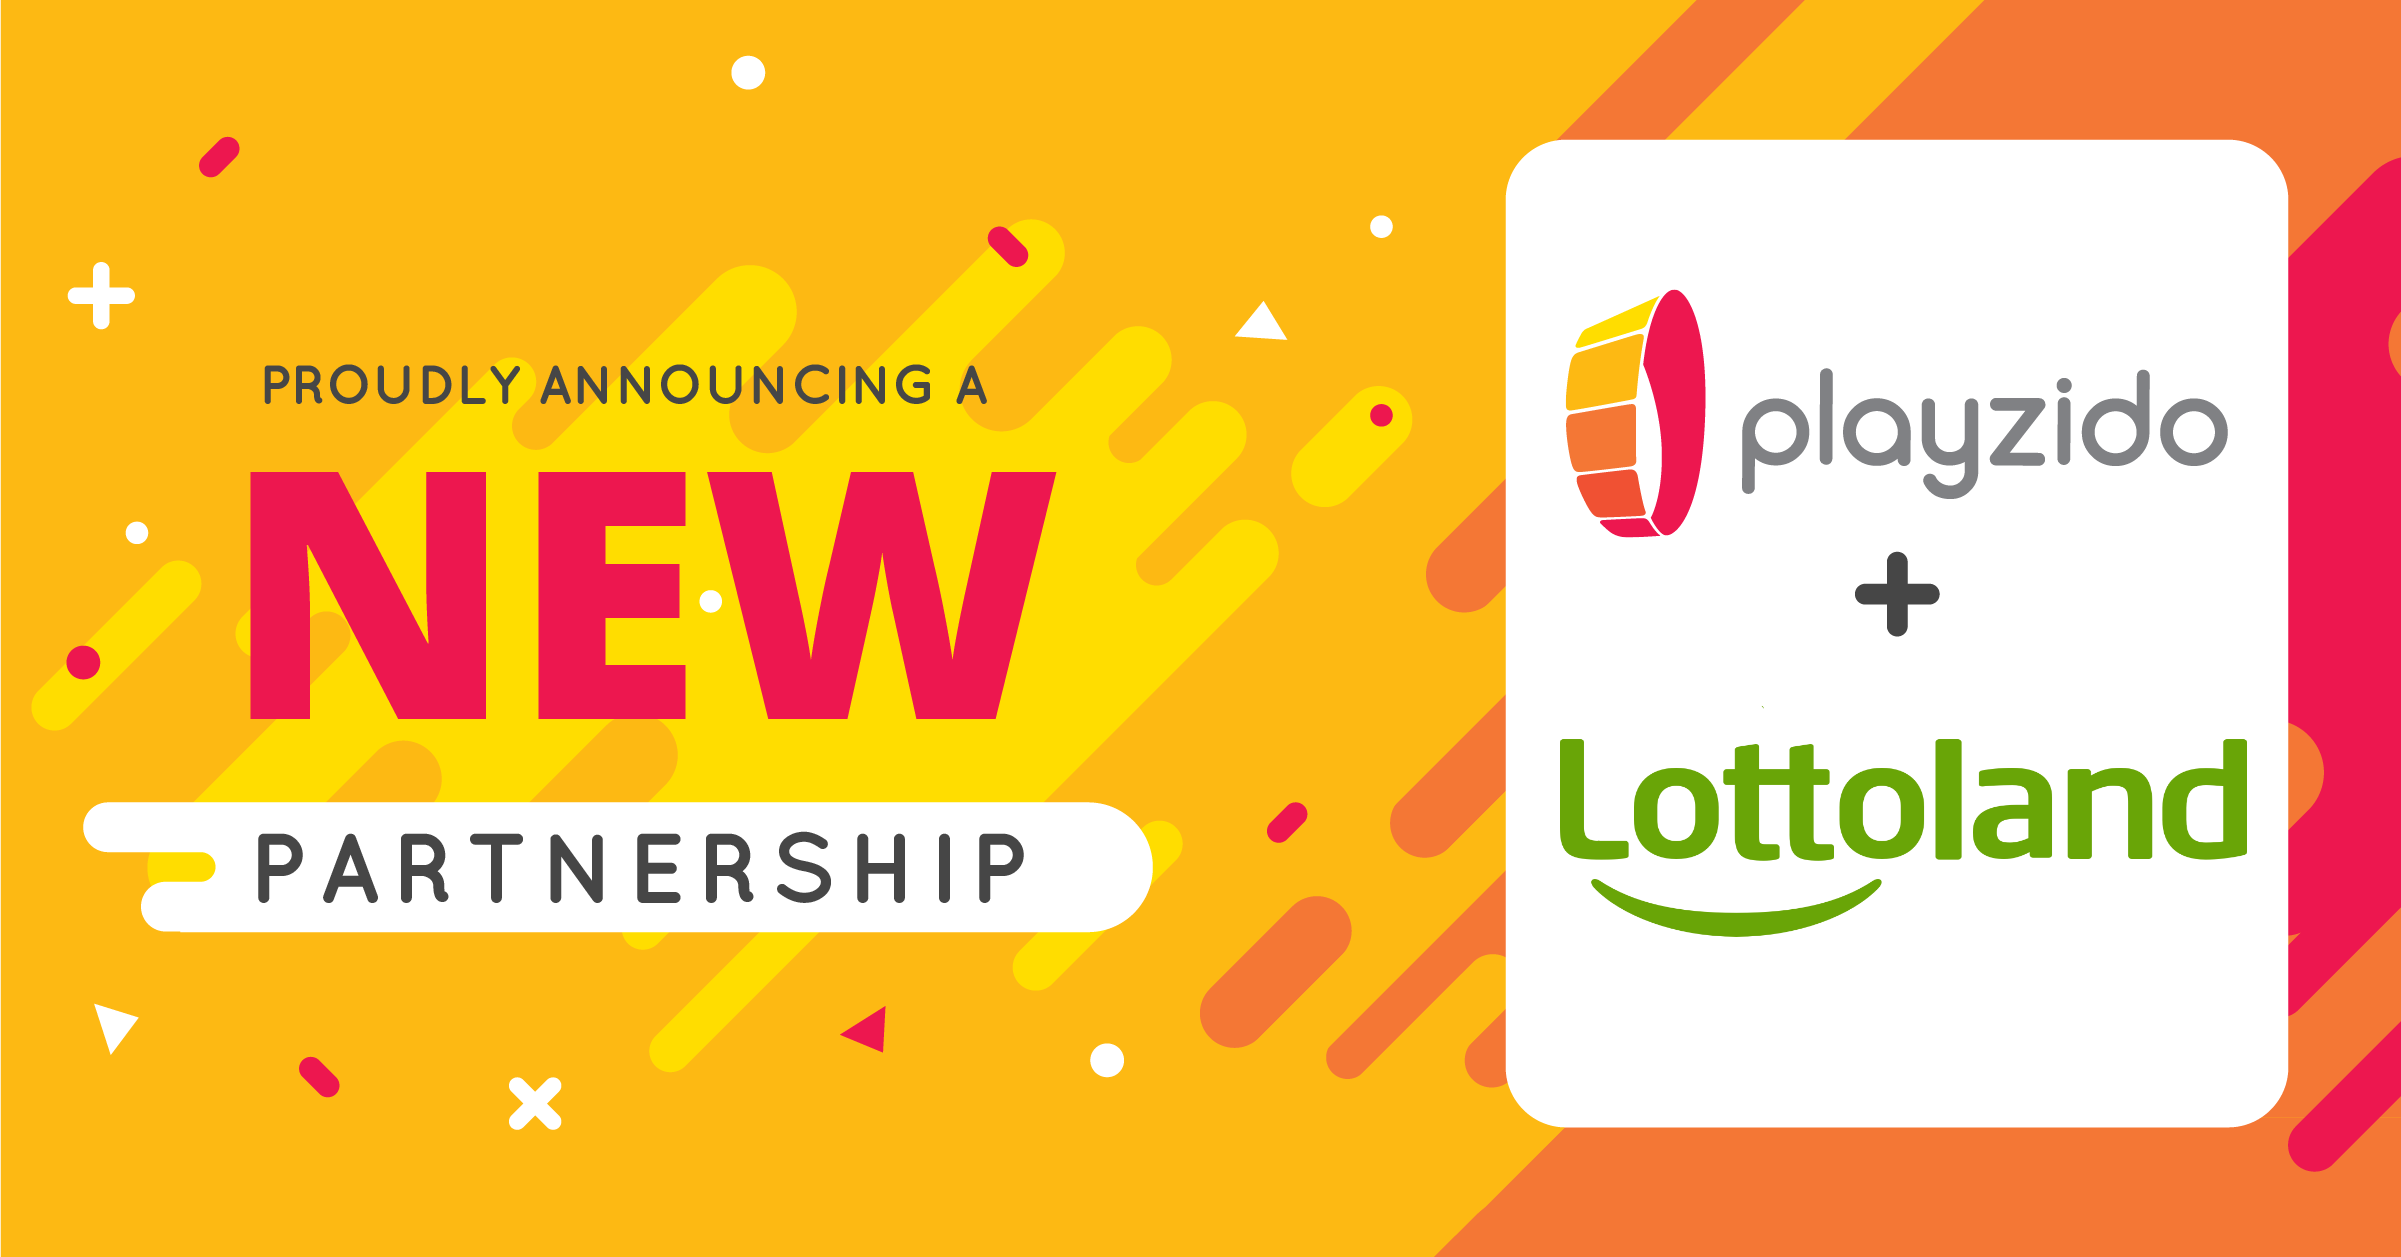 Playzido partners with Lottoland